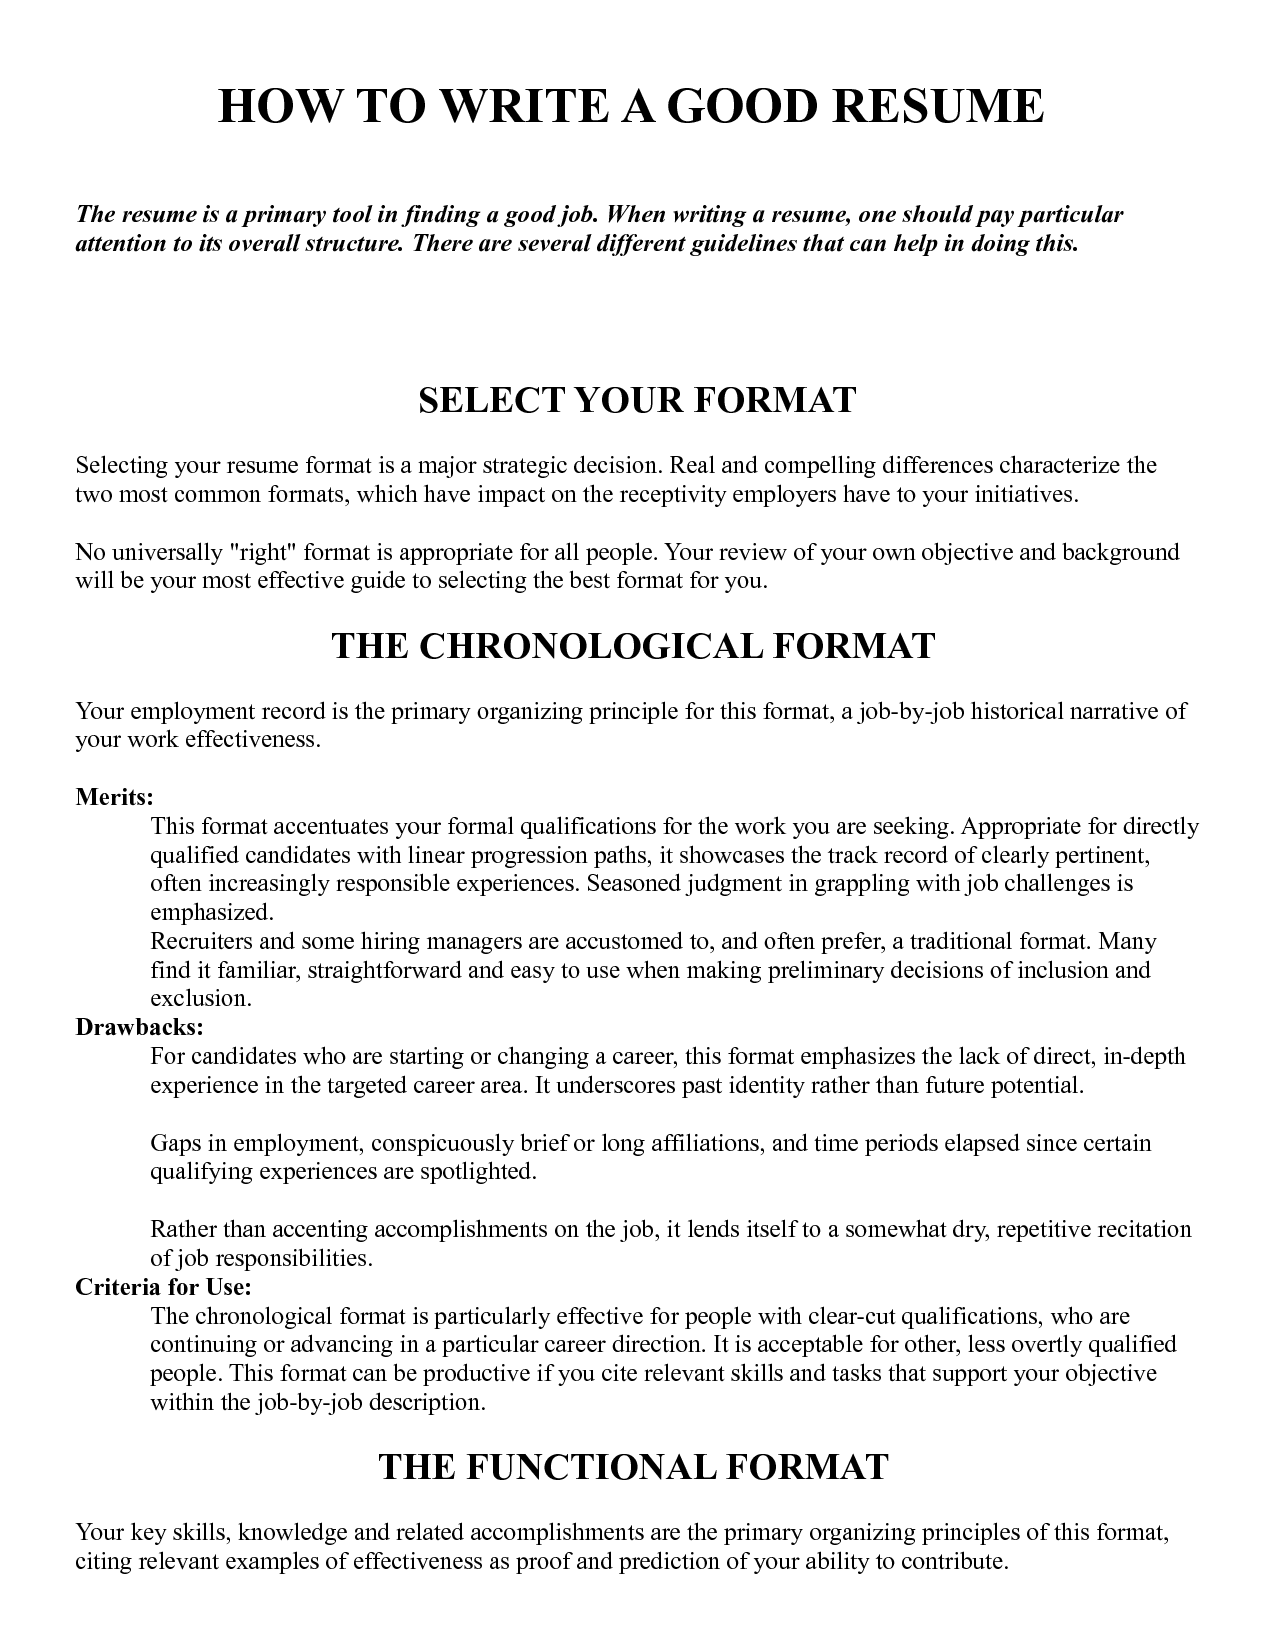 How To Write The Best Resume And Cover Letter How Write A Good Resume Impressive Cvs Pinterest